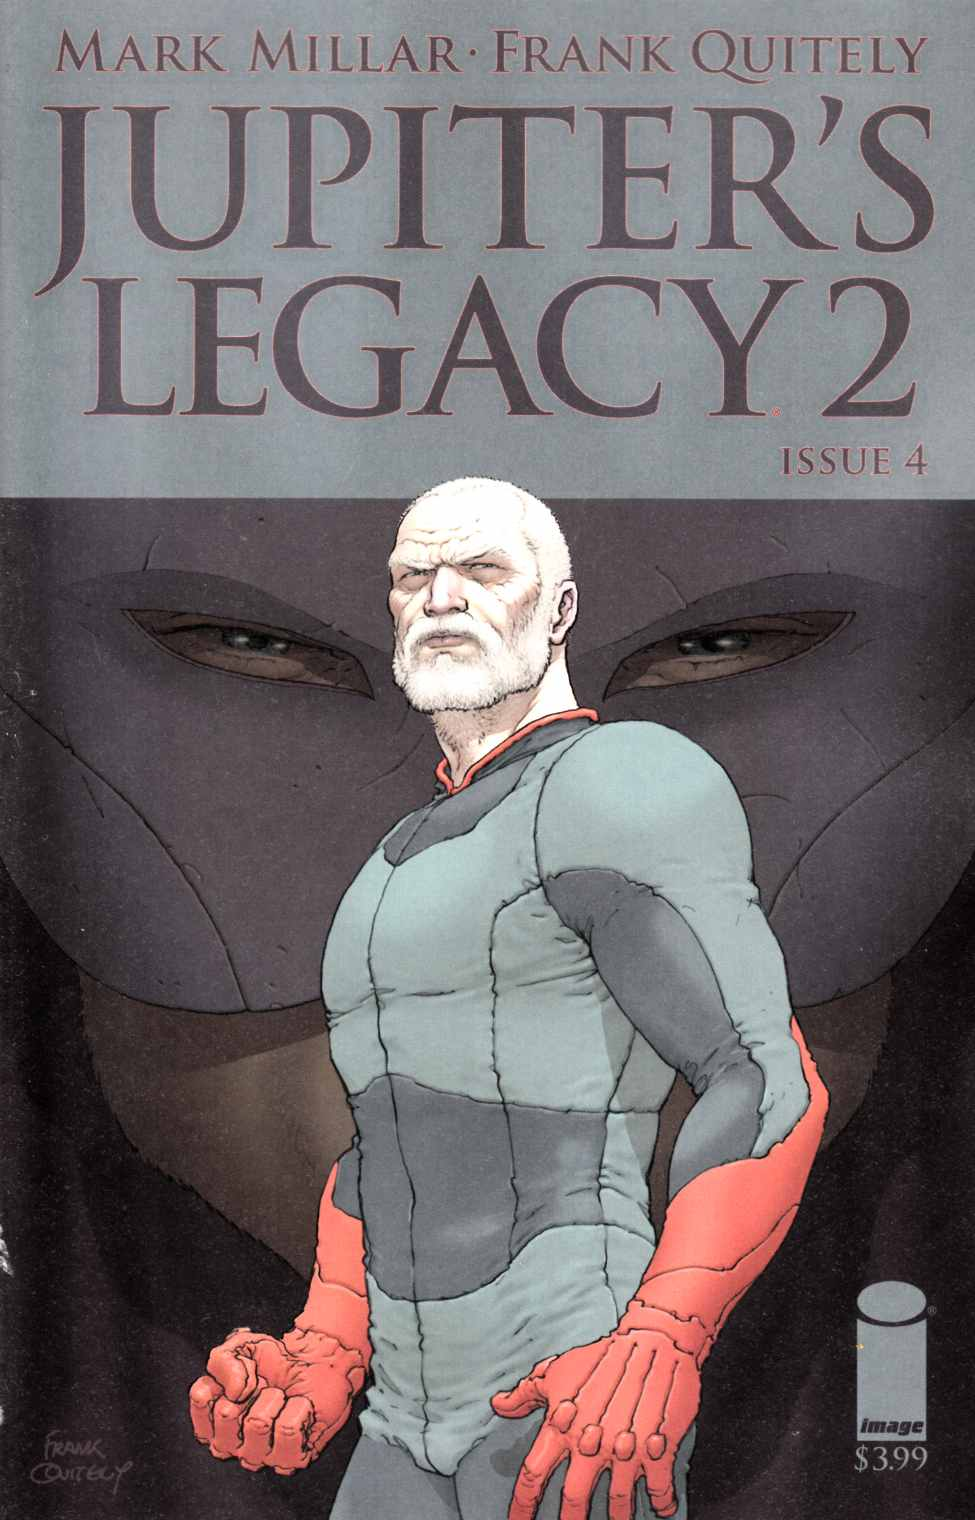 Jupiters Legacy Vol 2 #4 [Image Comic] THUMBNAIL